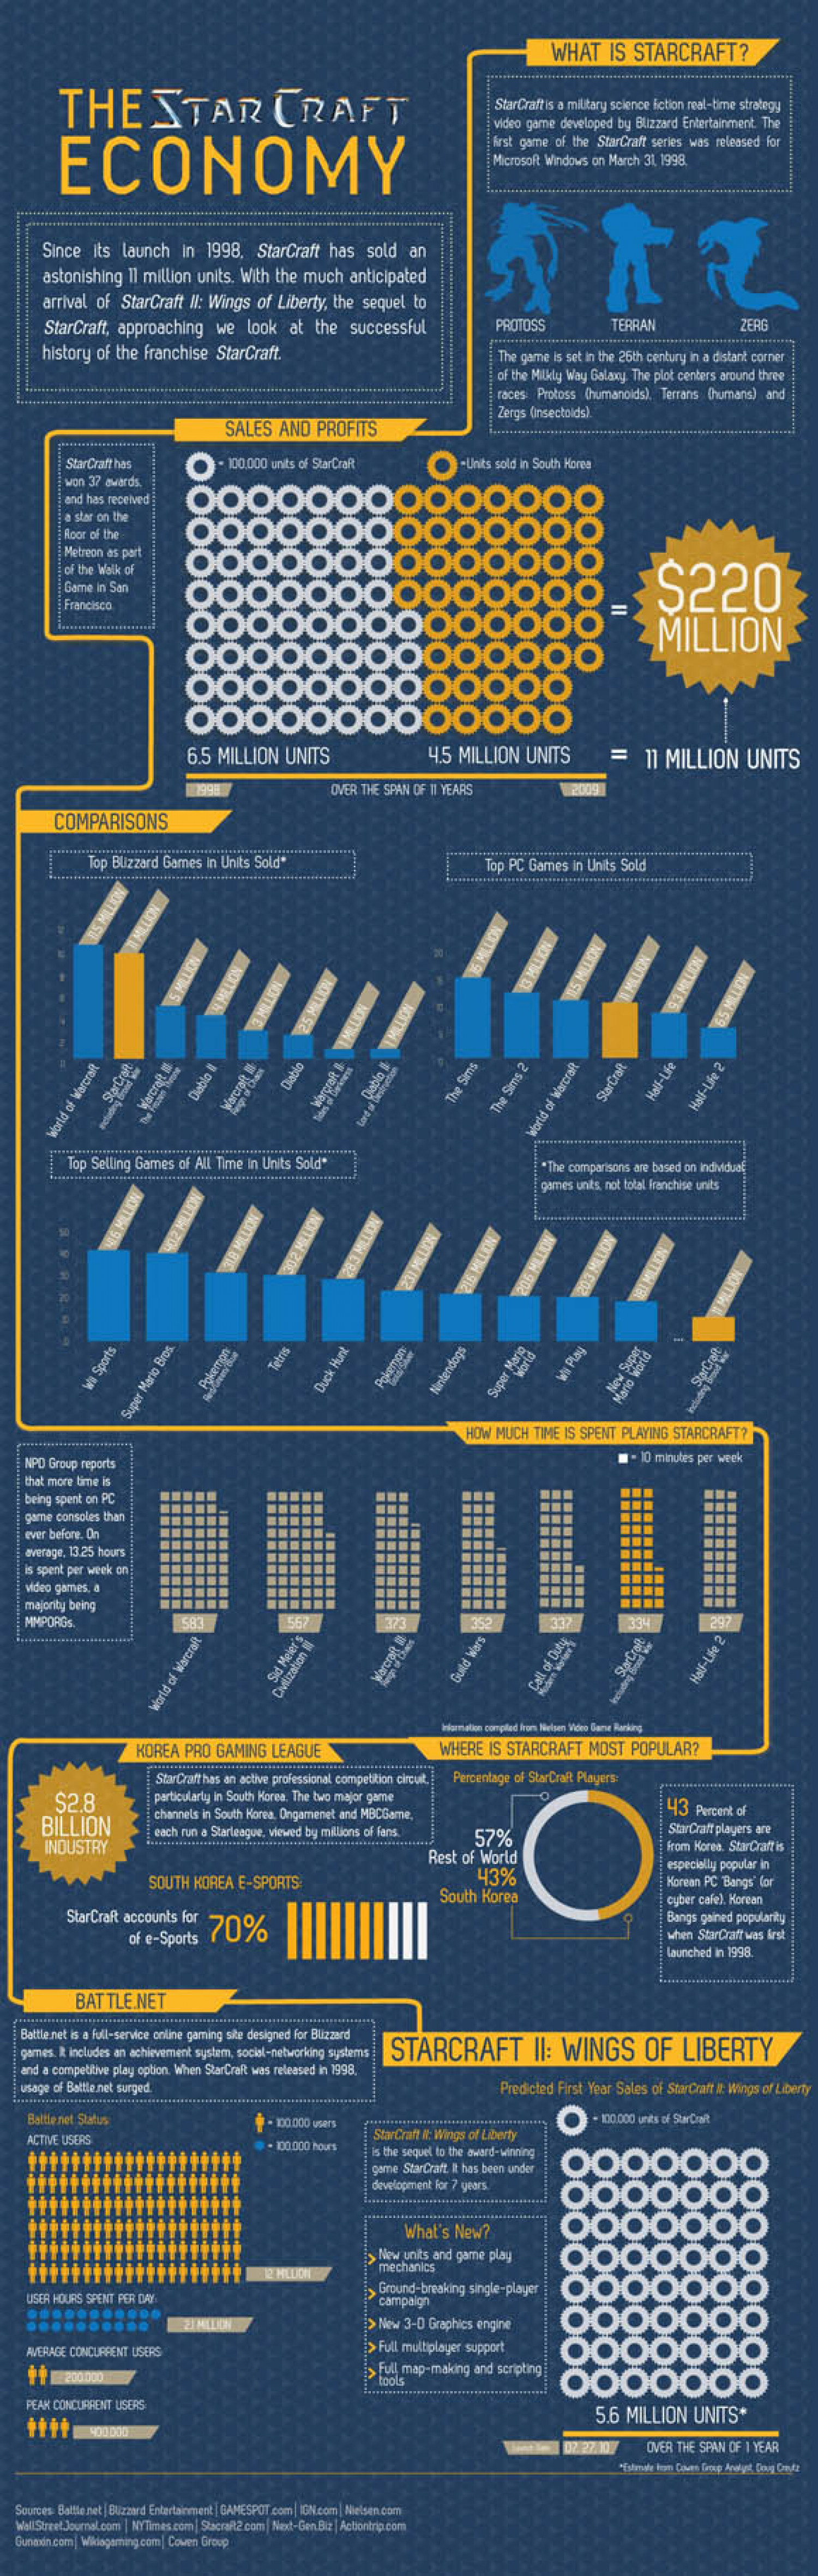 The Star Craft Economy Infographic